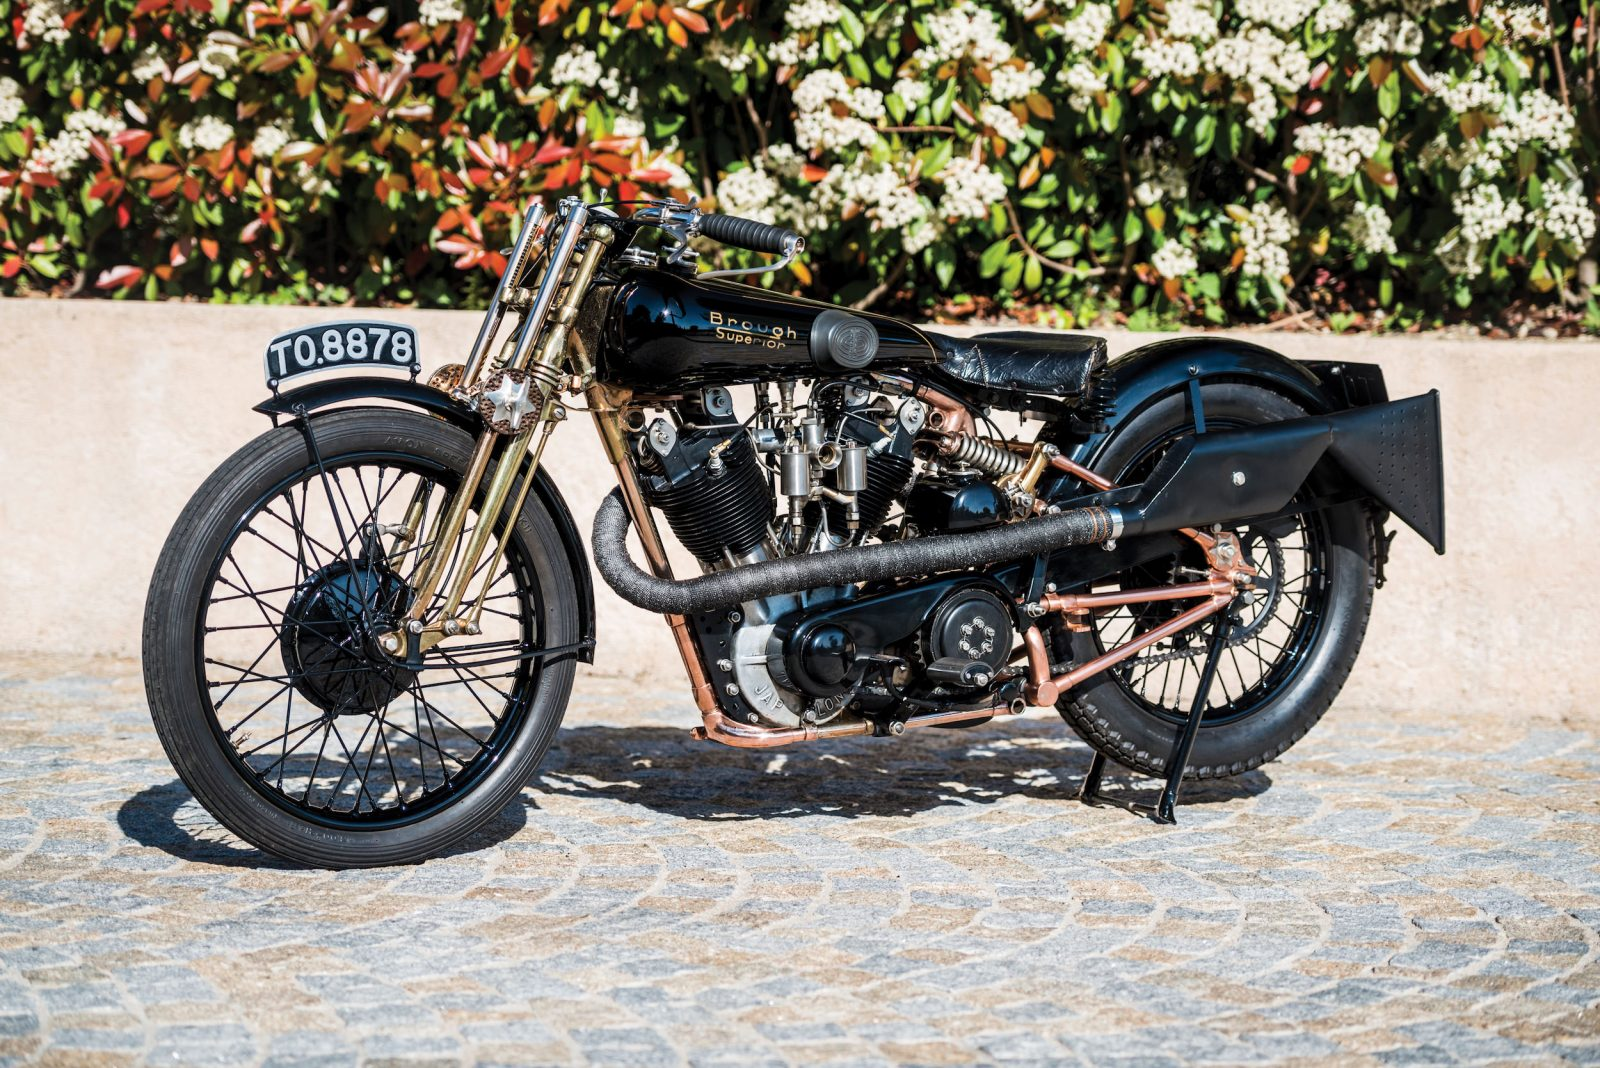 Brough Superior 1600x1068 - The Five Brough Superiors of the Villa Erba Sale